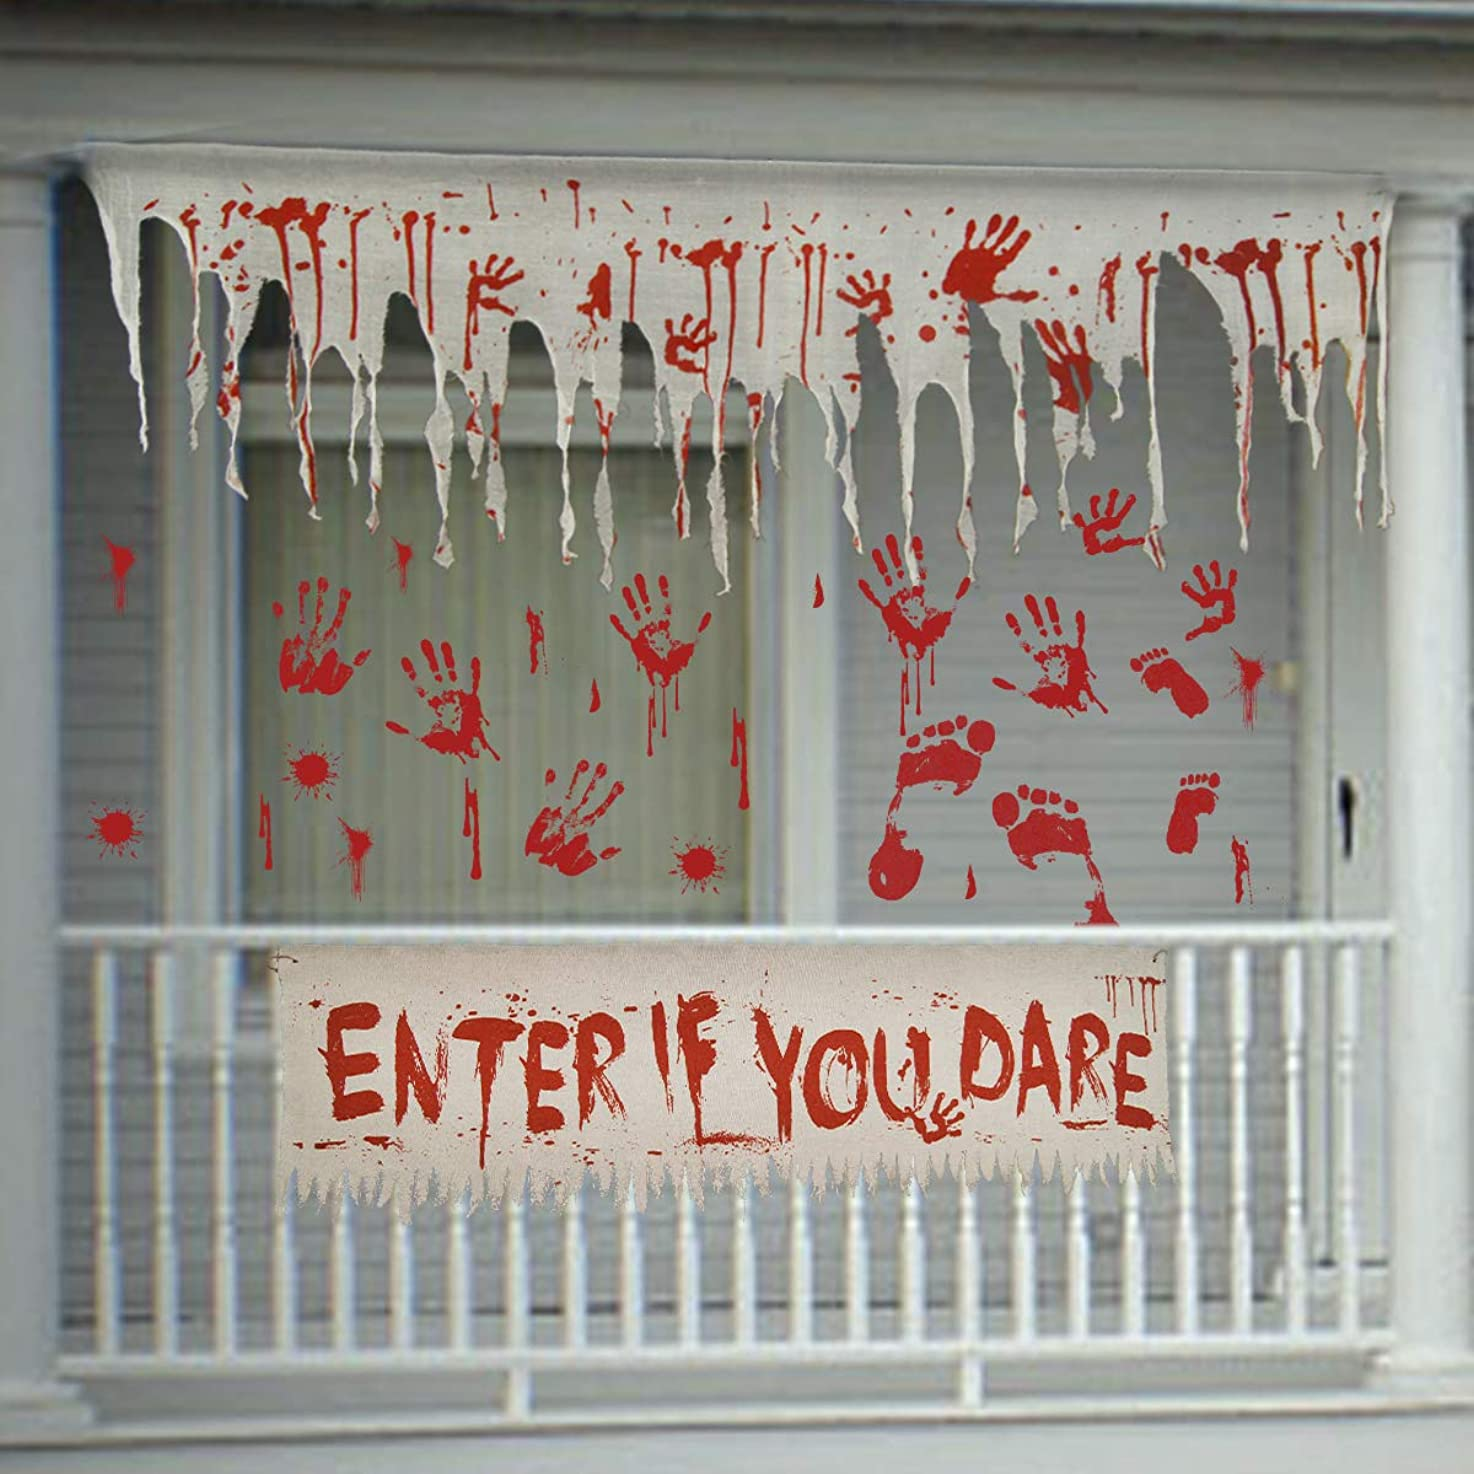 Pawliss Halloween Haunted House Props Decorations, Bloody Gauze Banners Wall Stickers Window Decals,Creepy Carnival Zombie Party Supplies,Scary Halloween Decor